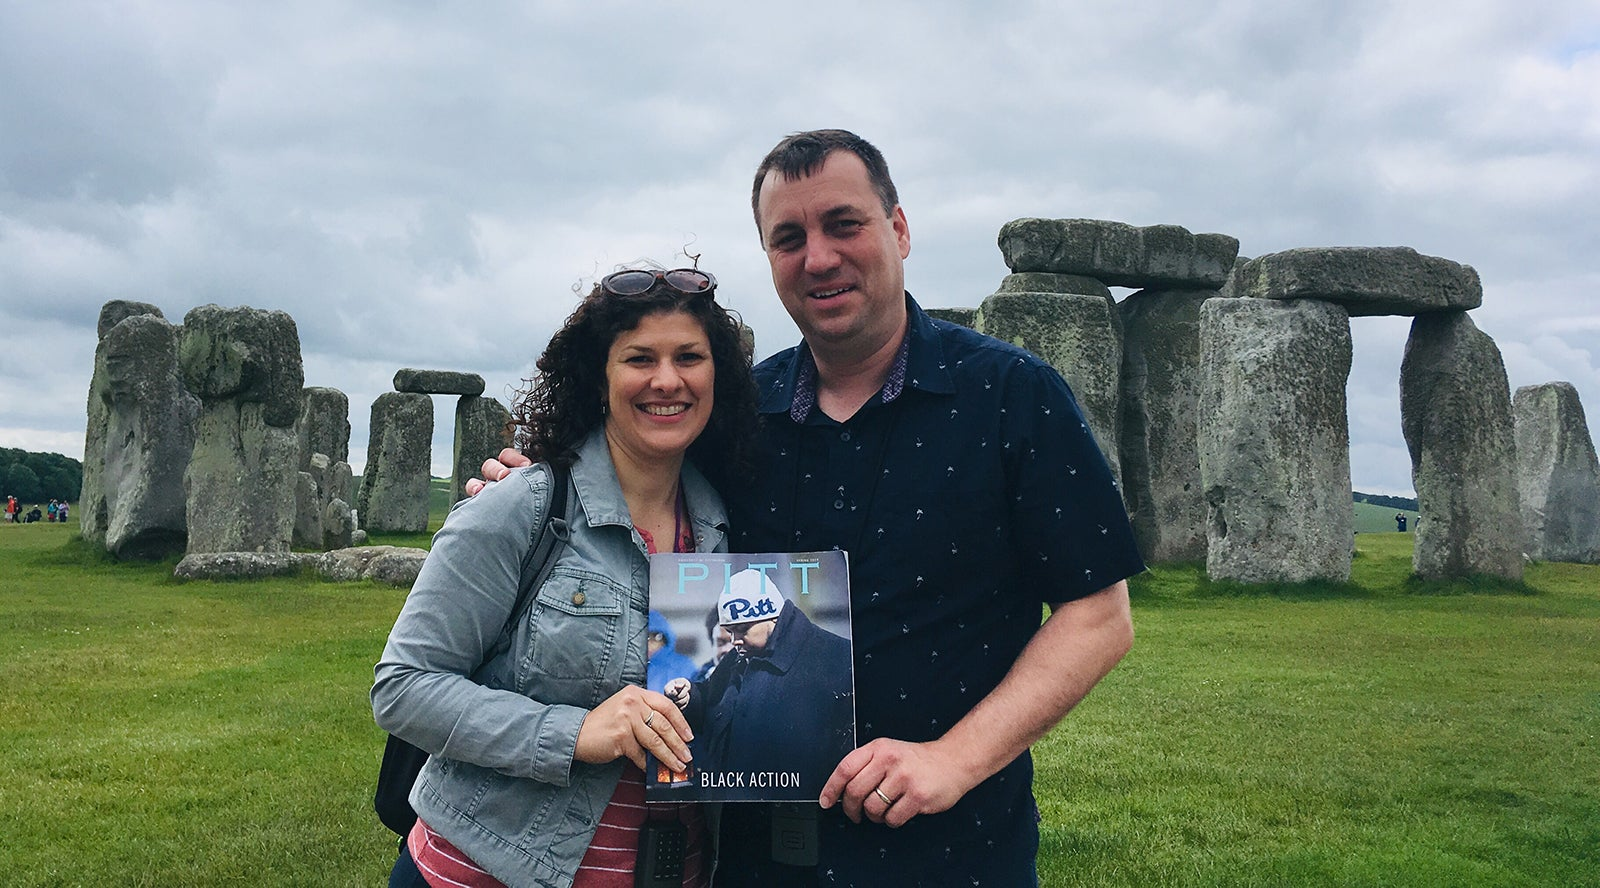 dark-haired main and woman hold Spring 2019 issue of Pitt Magazine in front of Stonehenge